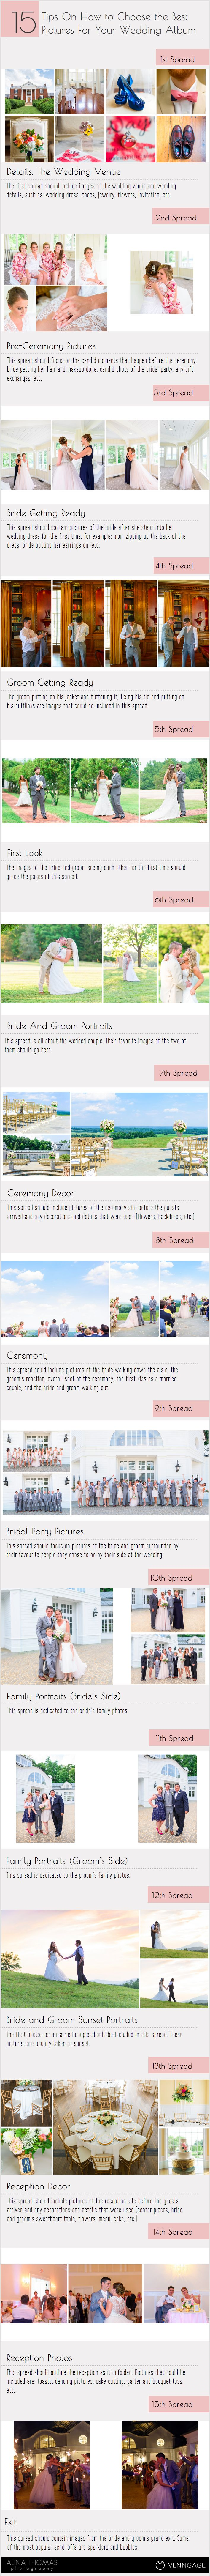 FREE Download: https://alinathomas.com/wedding-album-guide-free-download   How to choose the perfect pictures for your wedding album.   Wedding album infographic for photographers by Alina Thomas Photography   www.alinathomas.com